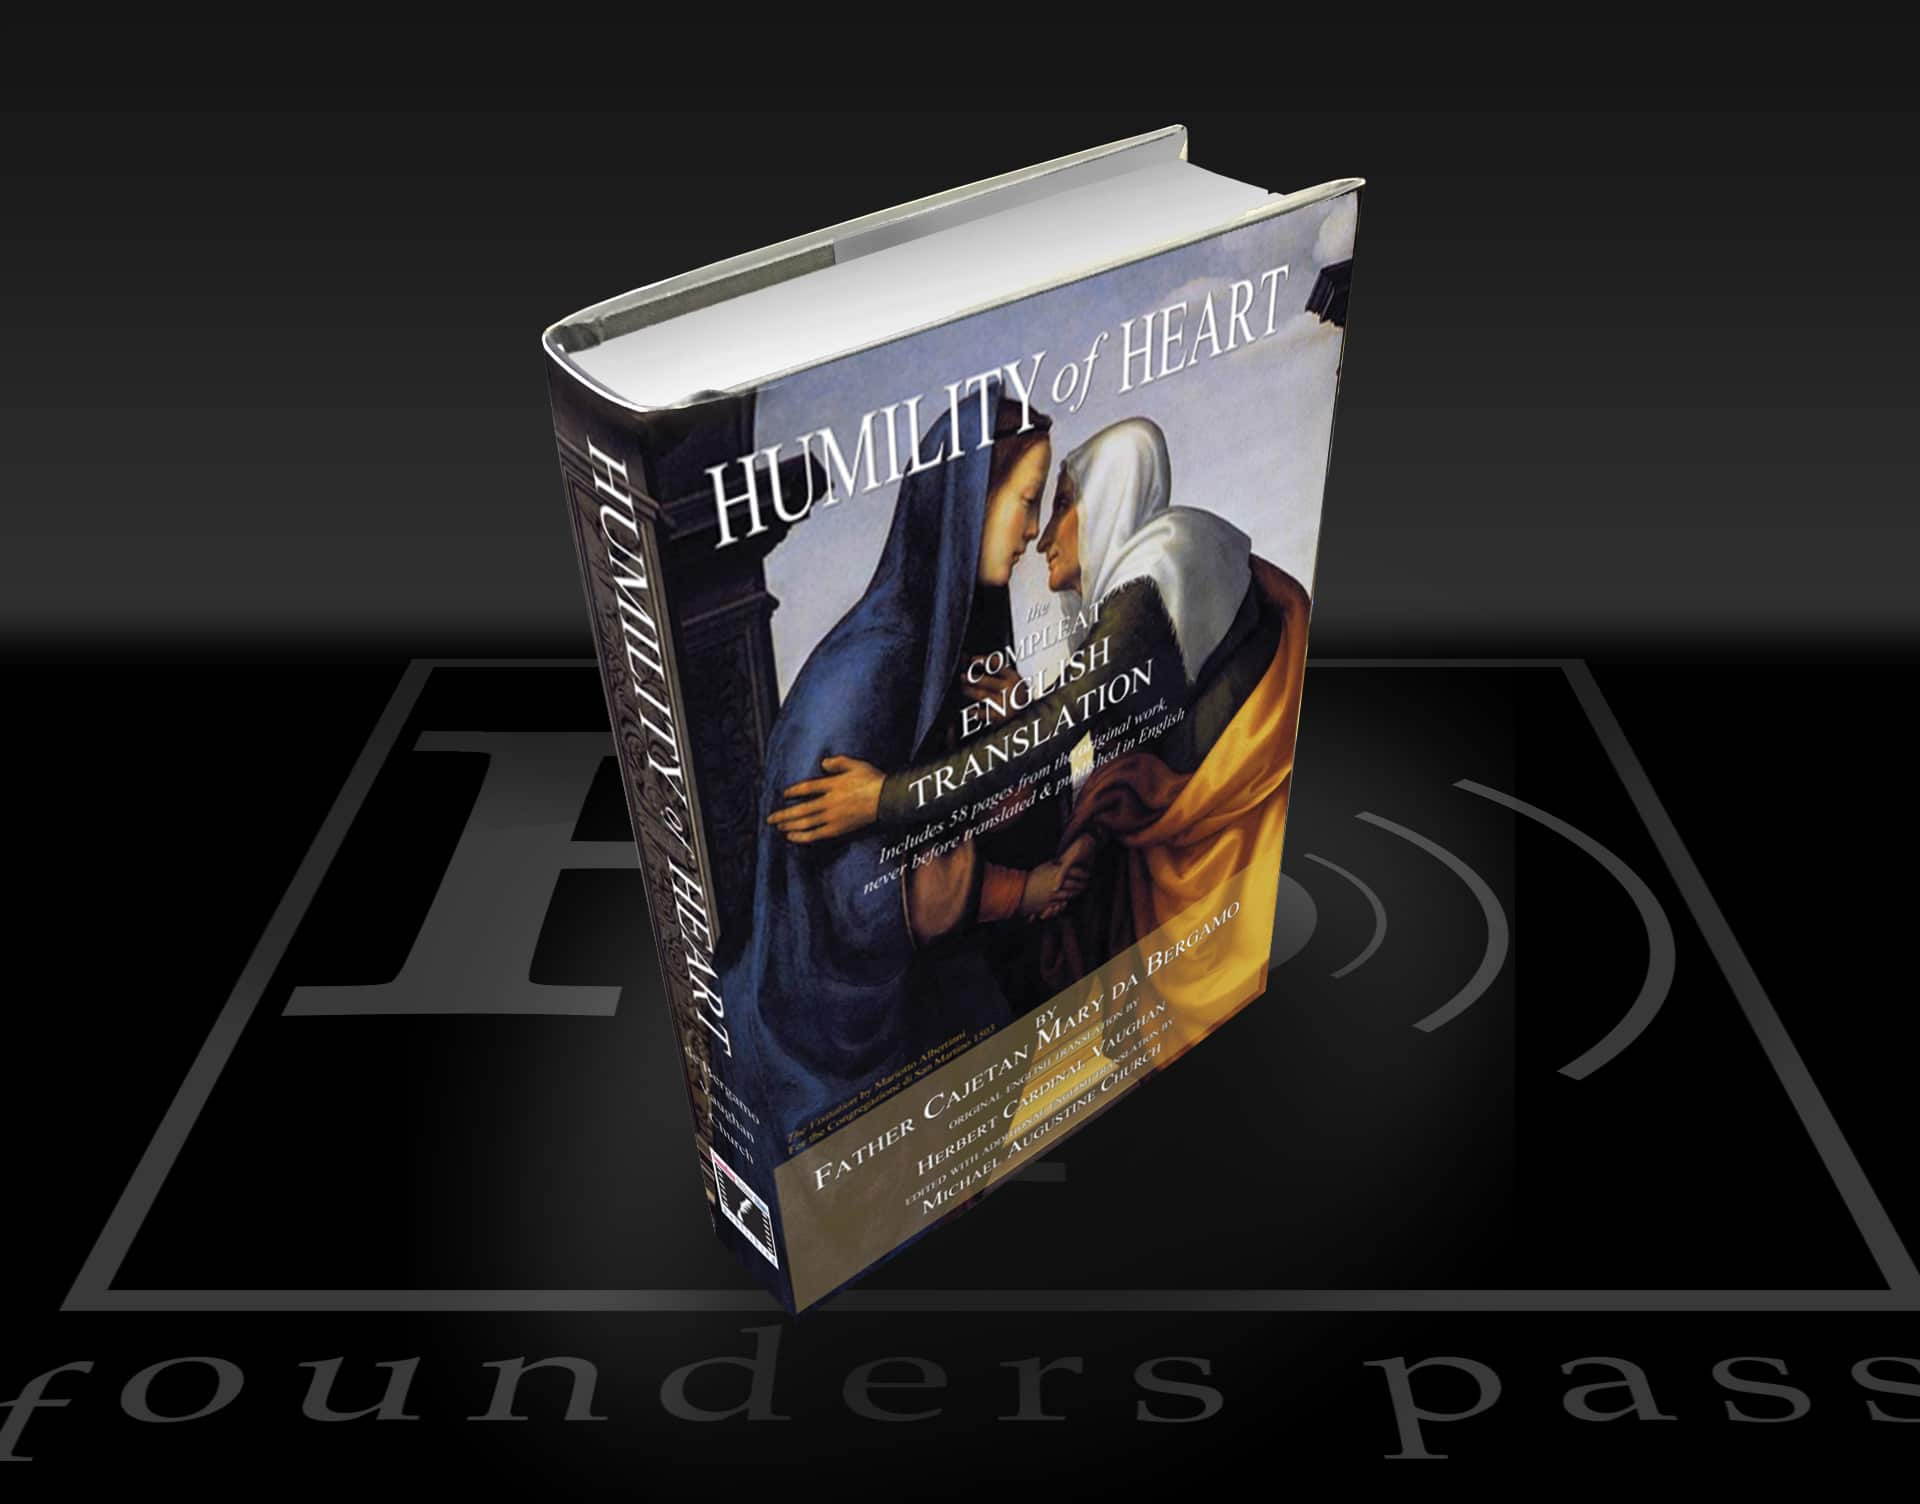 August Membership Incredible Deal: Join Today & Get A FREE Copy of Humility of Heart!